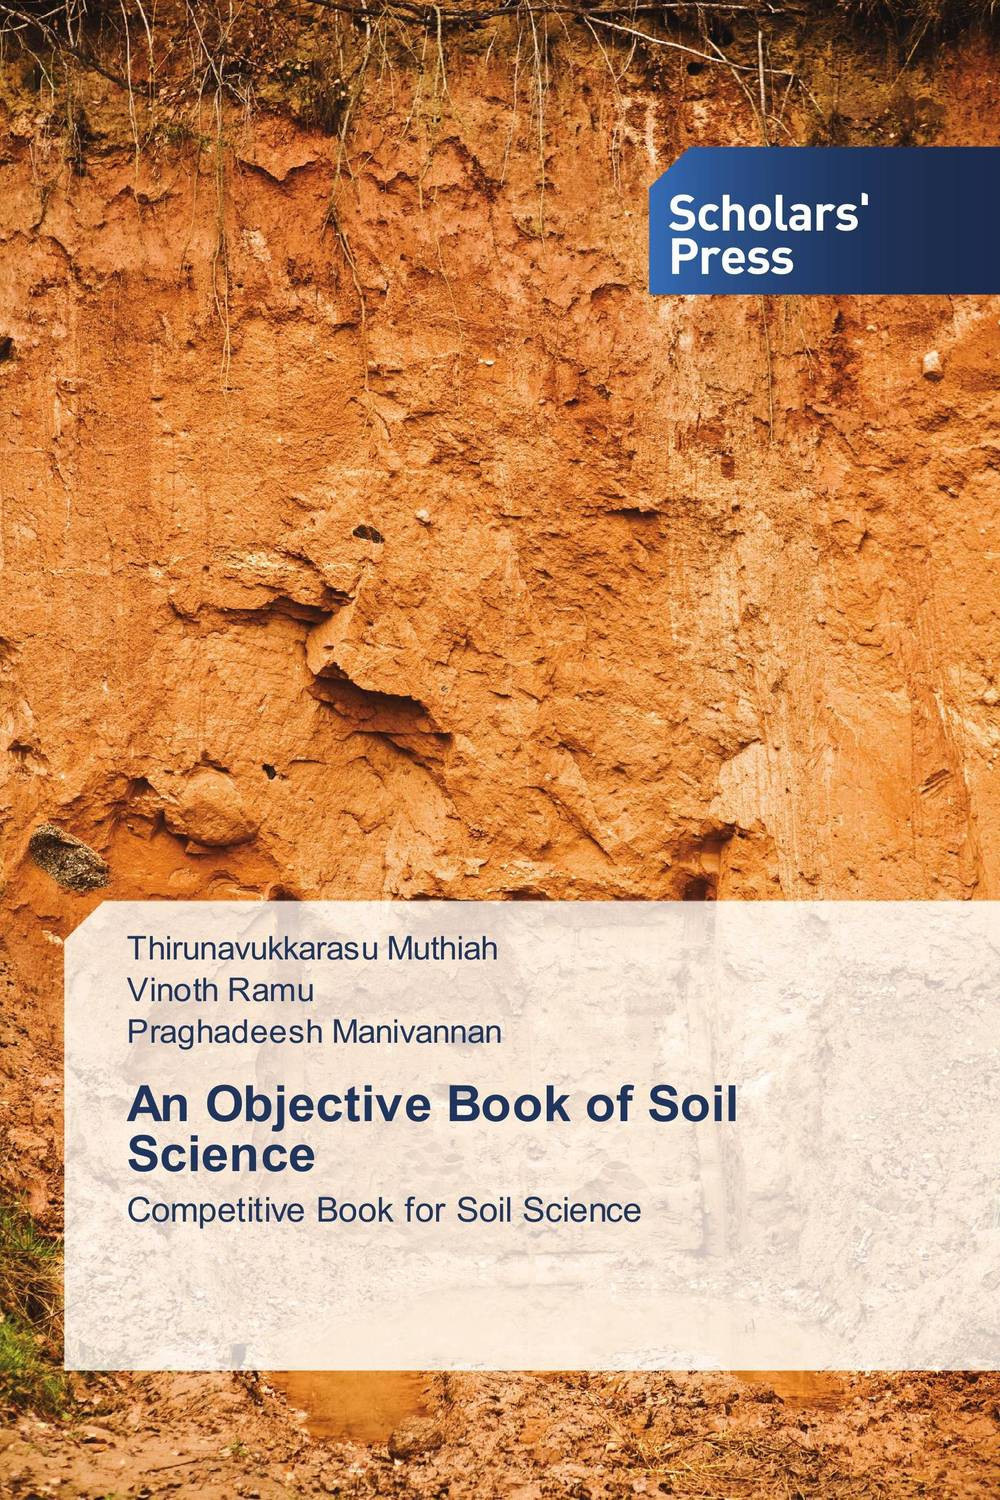 An Objective Book of Soil Science